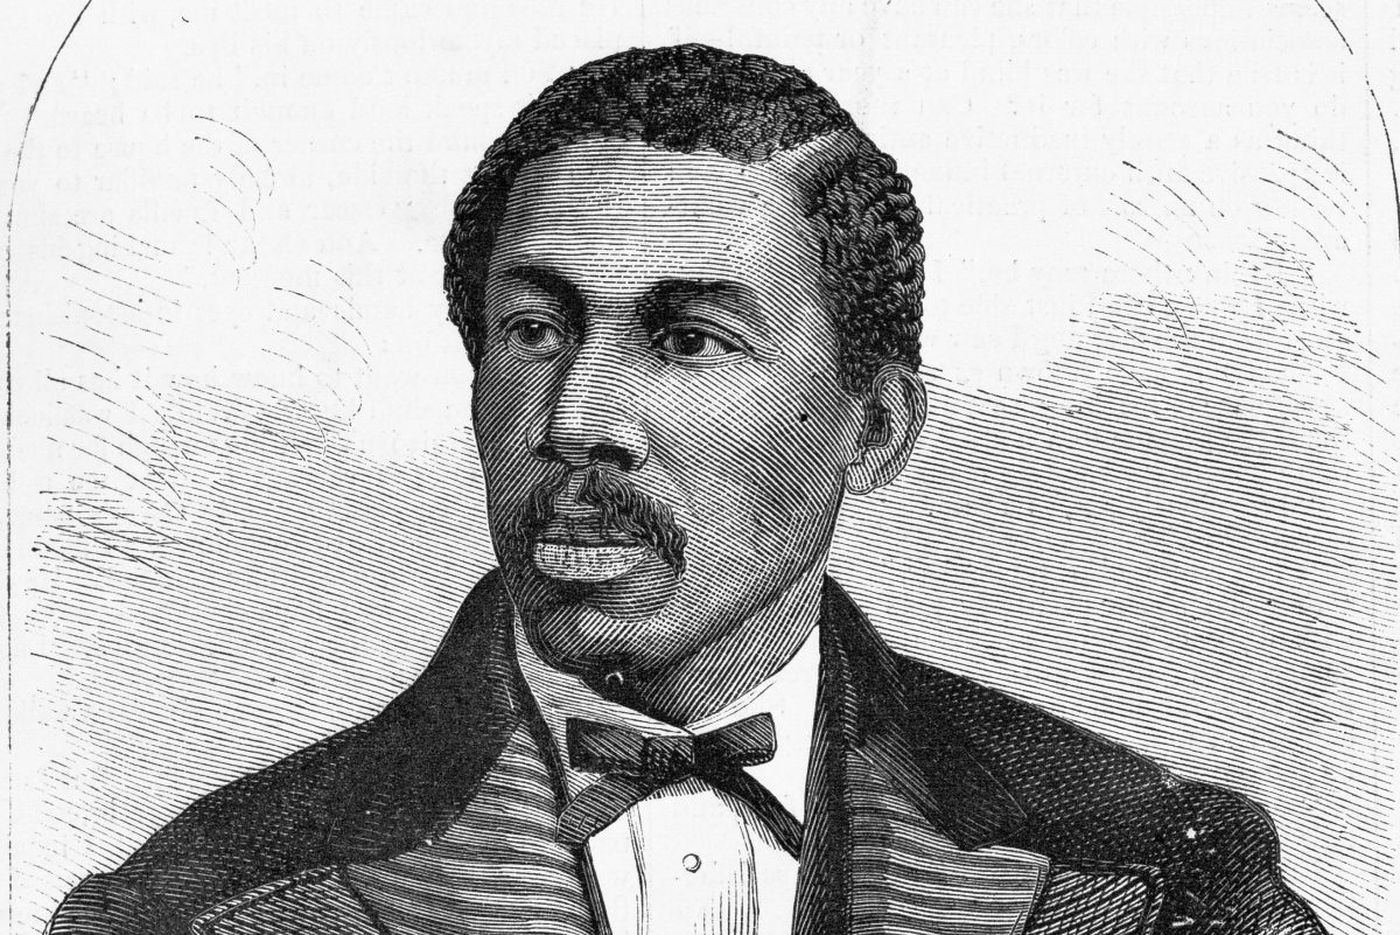 The dream of a monument to Philly civil rights hero Octavius Catto is finally fulfilled